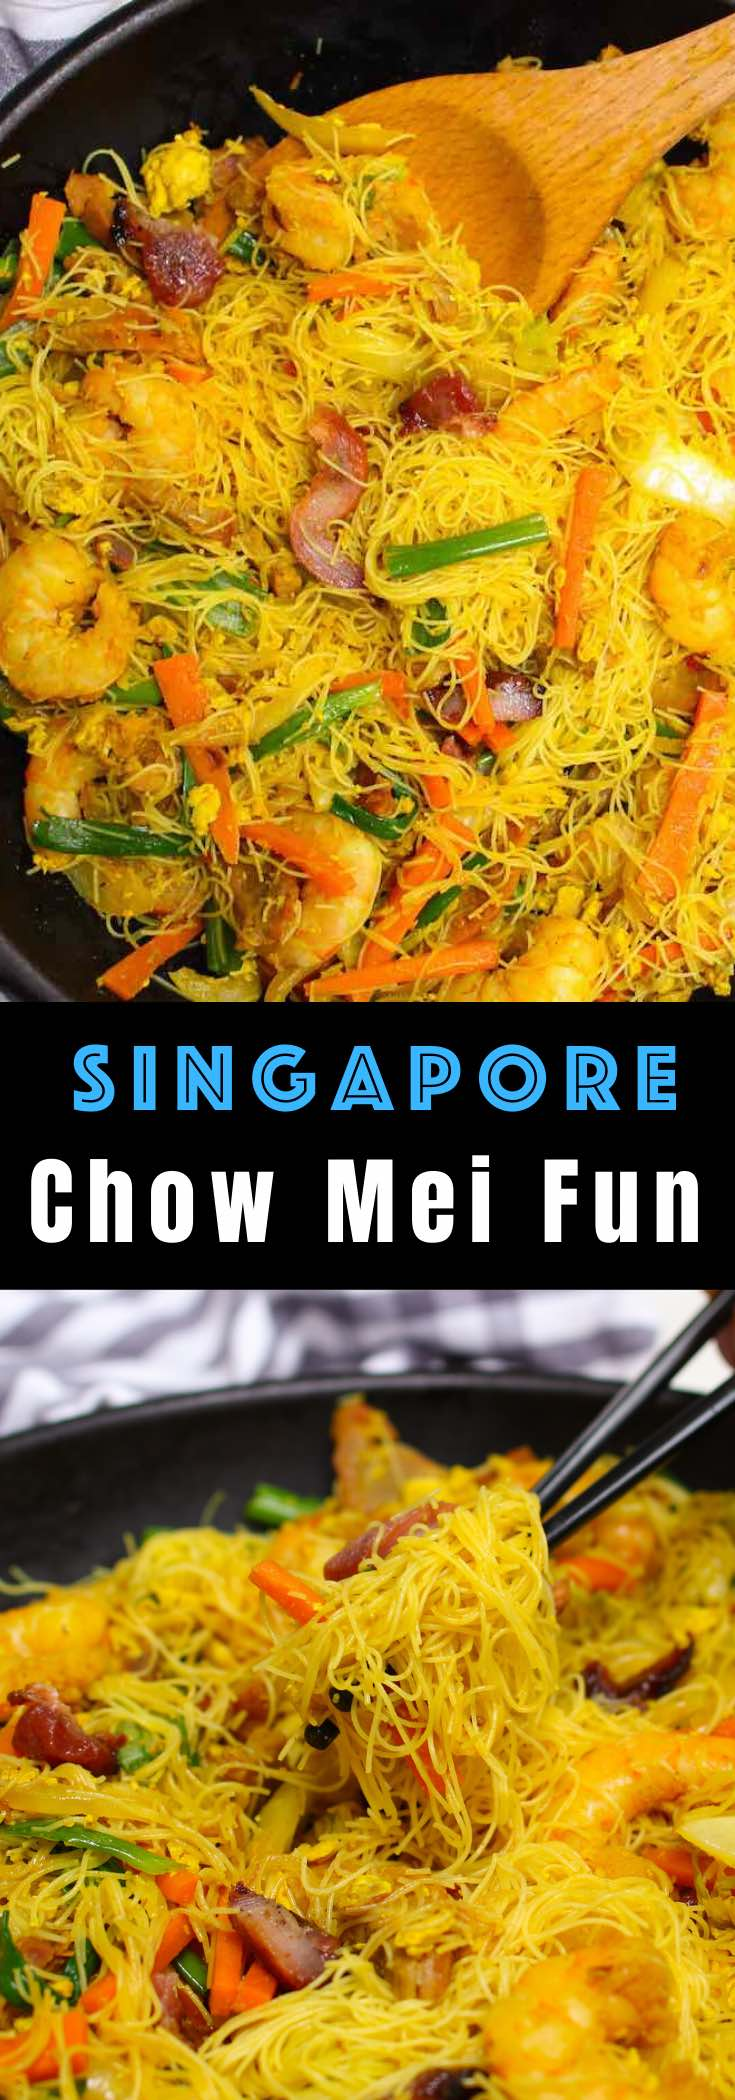 Chow Mei Fun is a classic Cantonese dish made with thin rice noodles, vegetables and pork or shrimp although there are many substitutions possible. It's pure comfort food that's ready in just 20 minutes! #chowmeifun @singaporenoodles